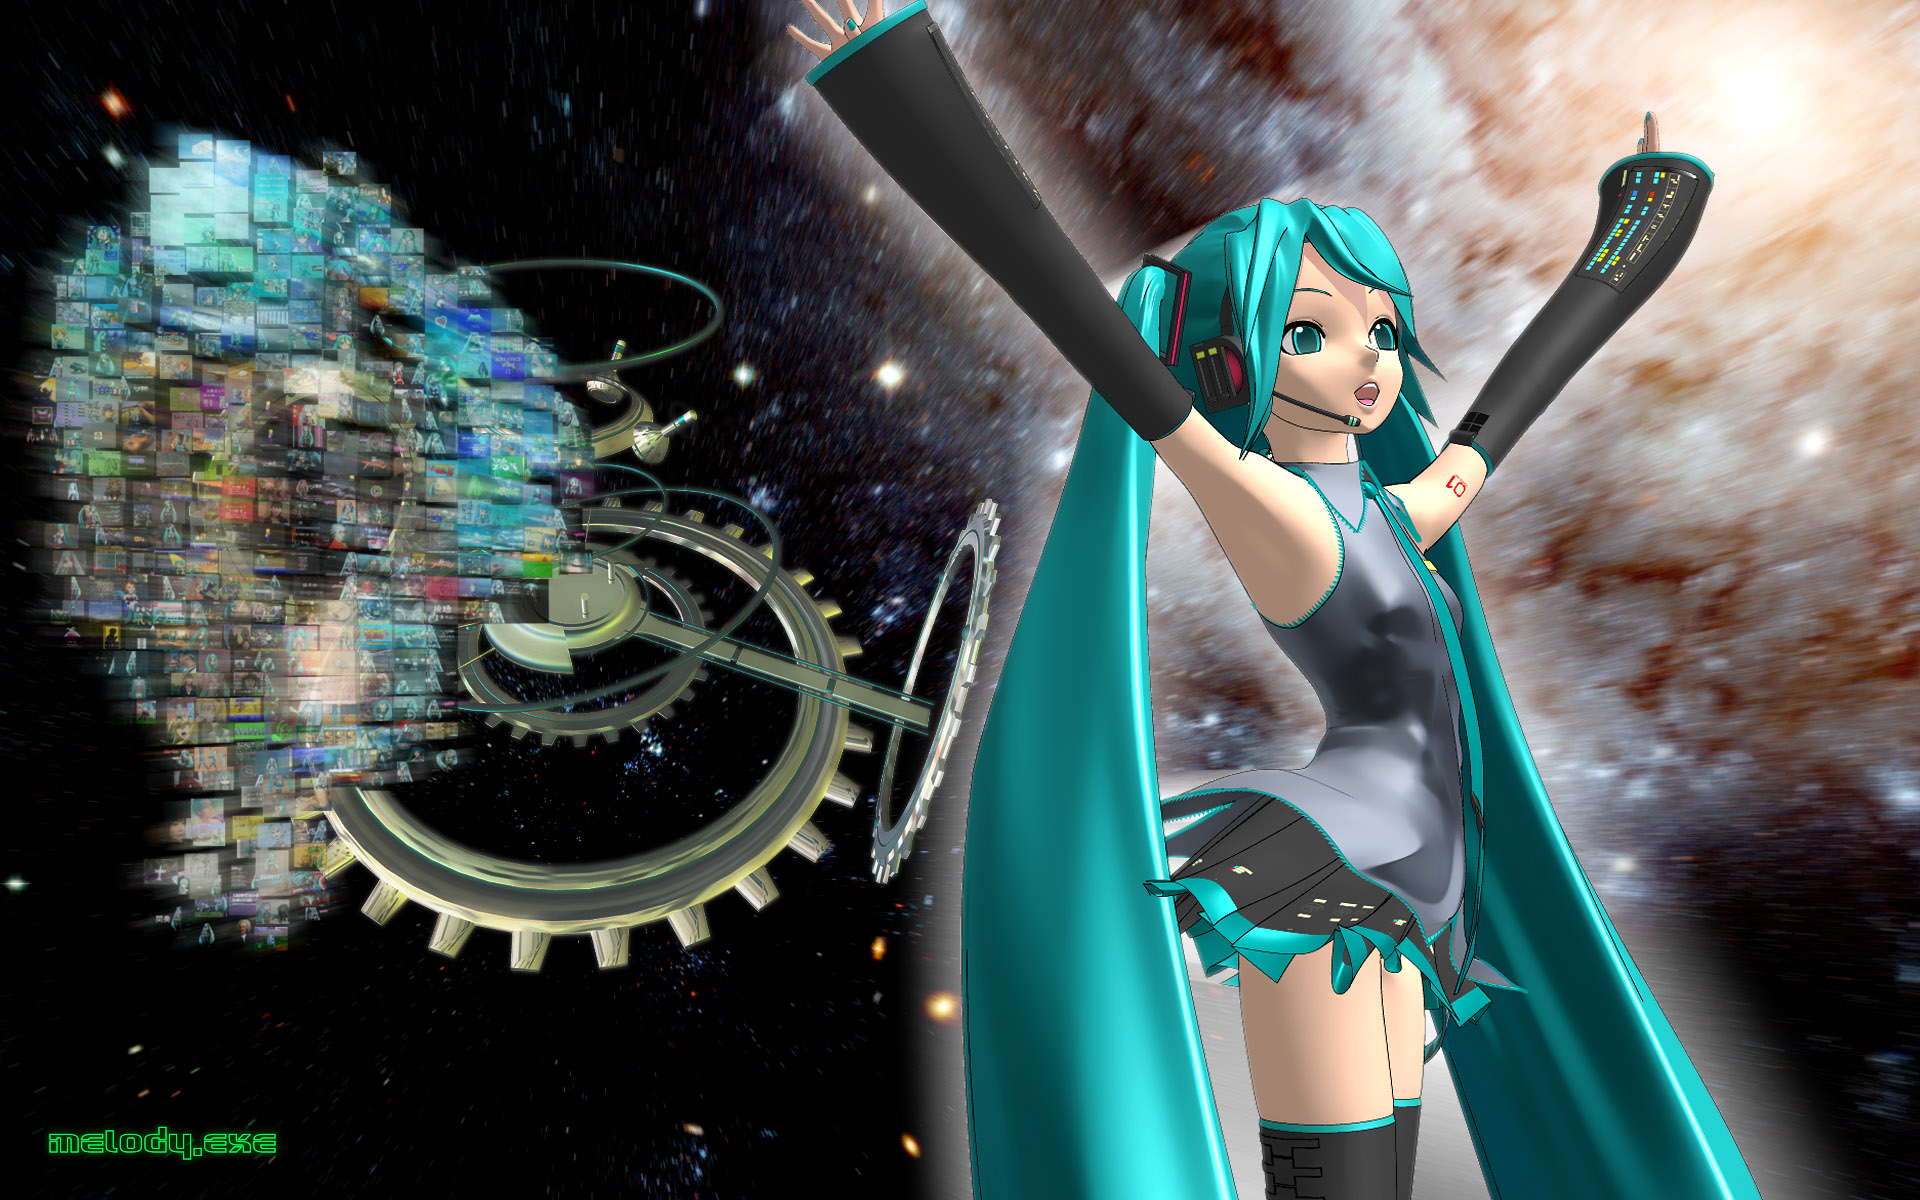 Could Hatsune Miku appear at the 2020 Tokyo Olympics?